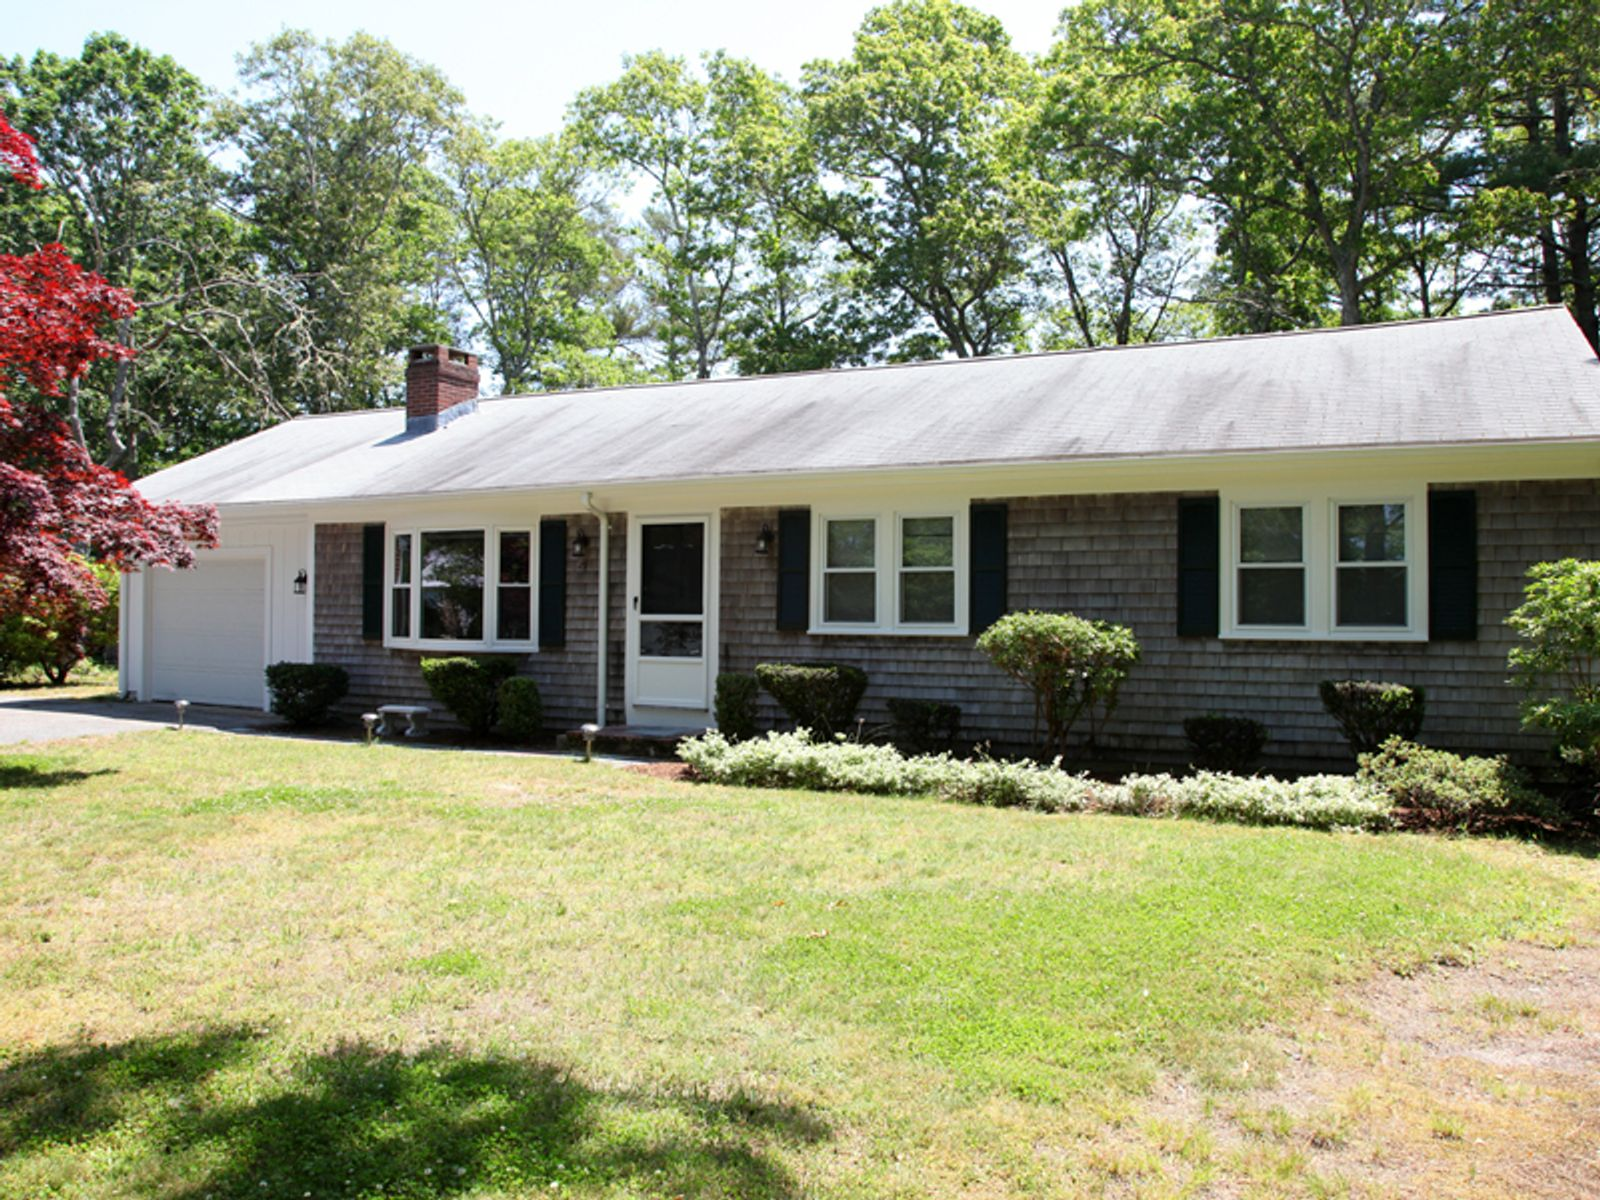 Osterville Gem, Osterville MA Single Family Home - Cape Cod Real Estate